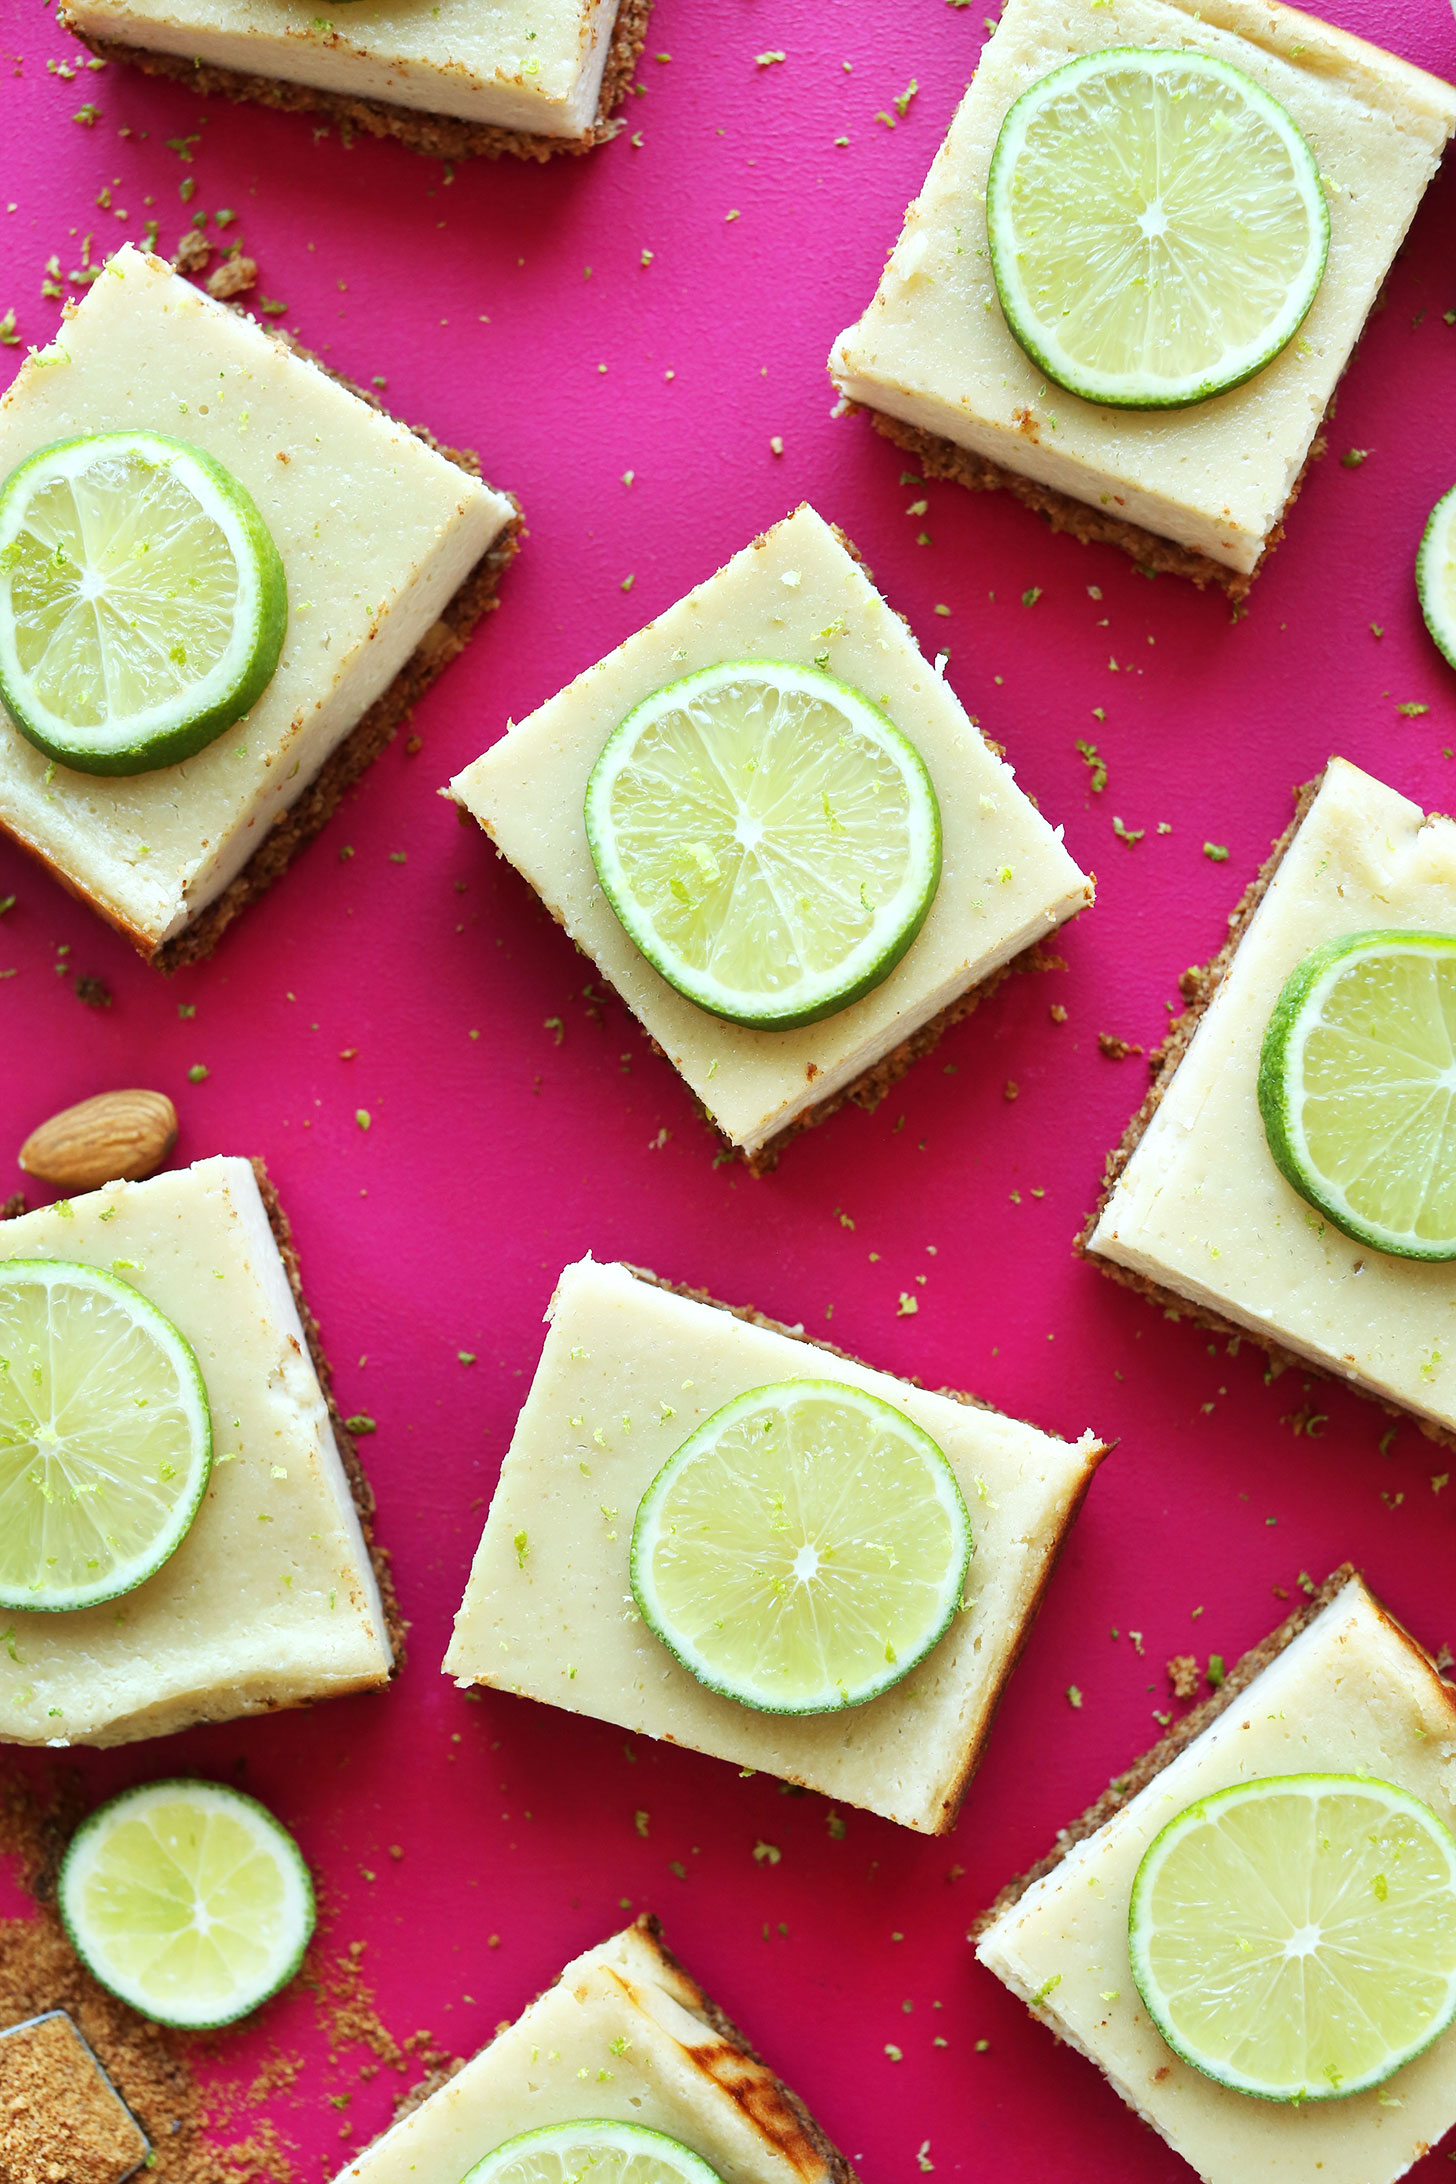 easy-key-lime-pie-bars-vegan-glutenfree-and-naturally-sweetened-just-10-basic-ingredients-required-lime-dessert-recipe-summer